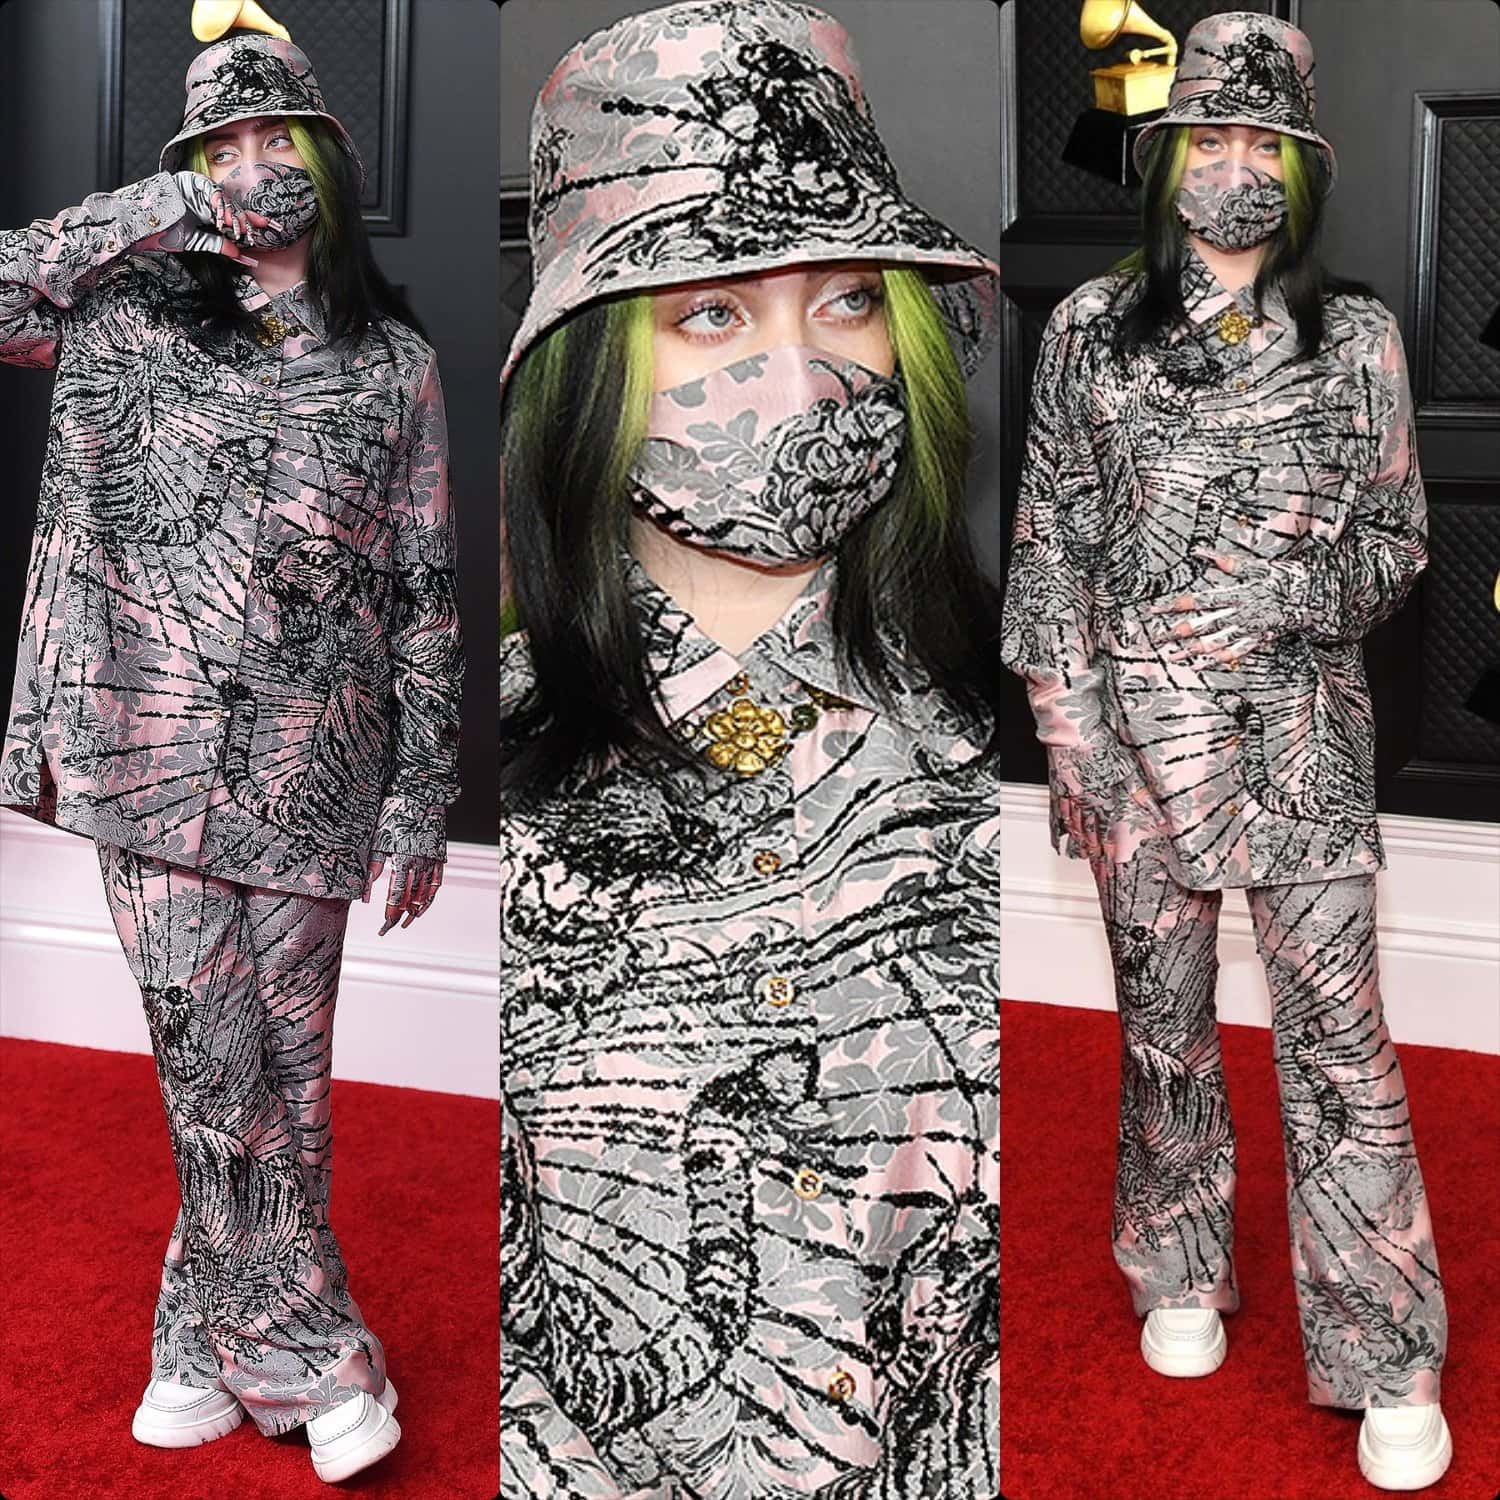 Billie Eilish in Gucci for Grammy Awards 2021 by RUNWAY MAGAZINE